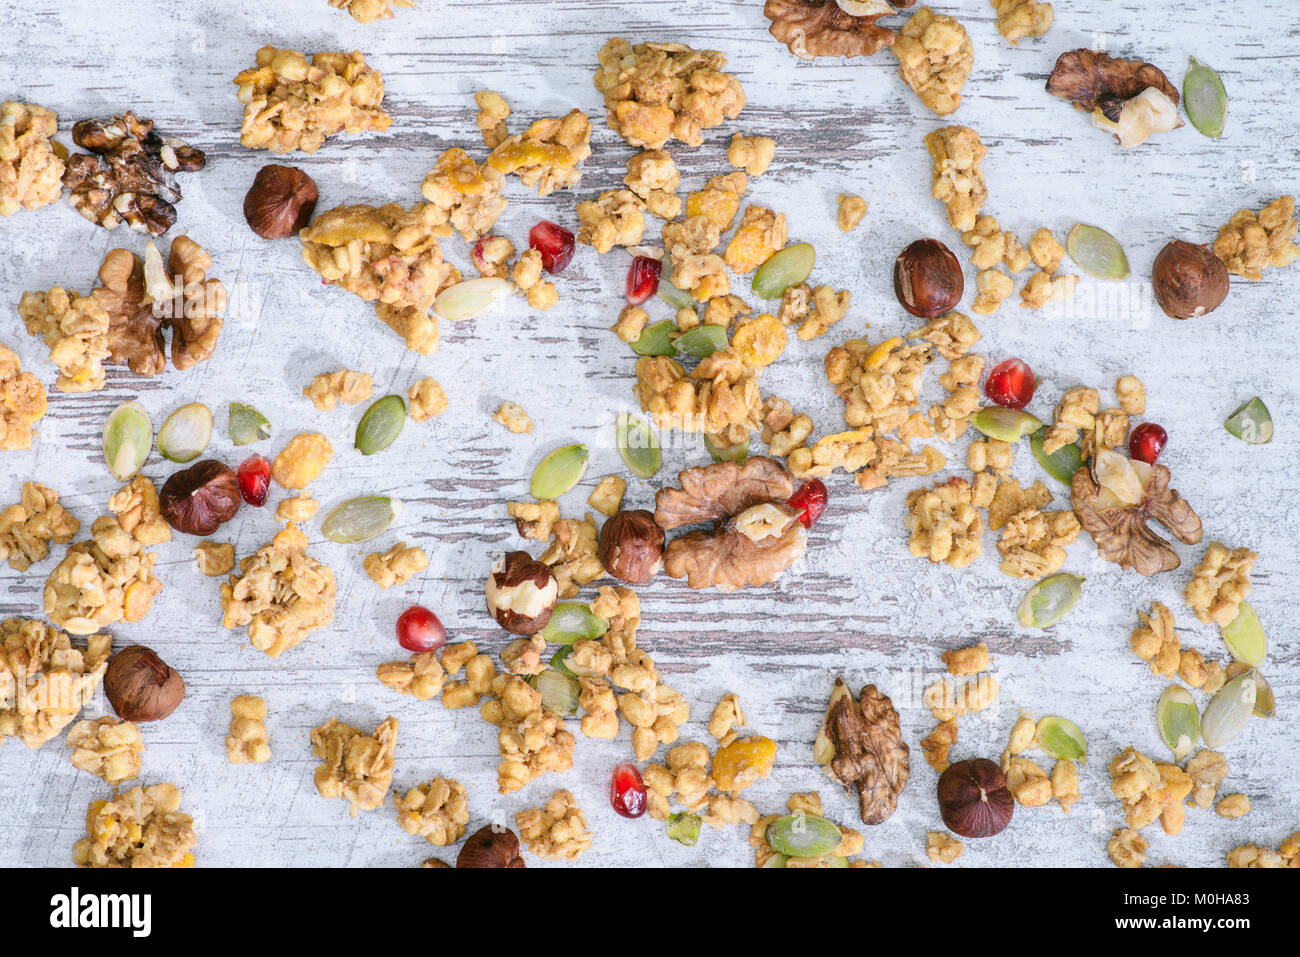 top view of scattered granola with nuts on grungy tabletop - Stock Image